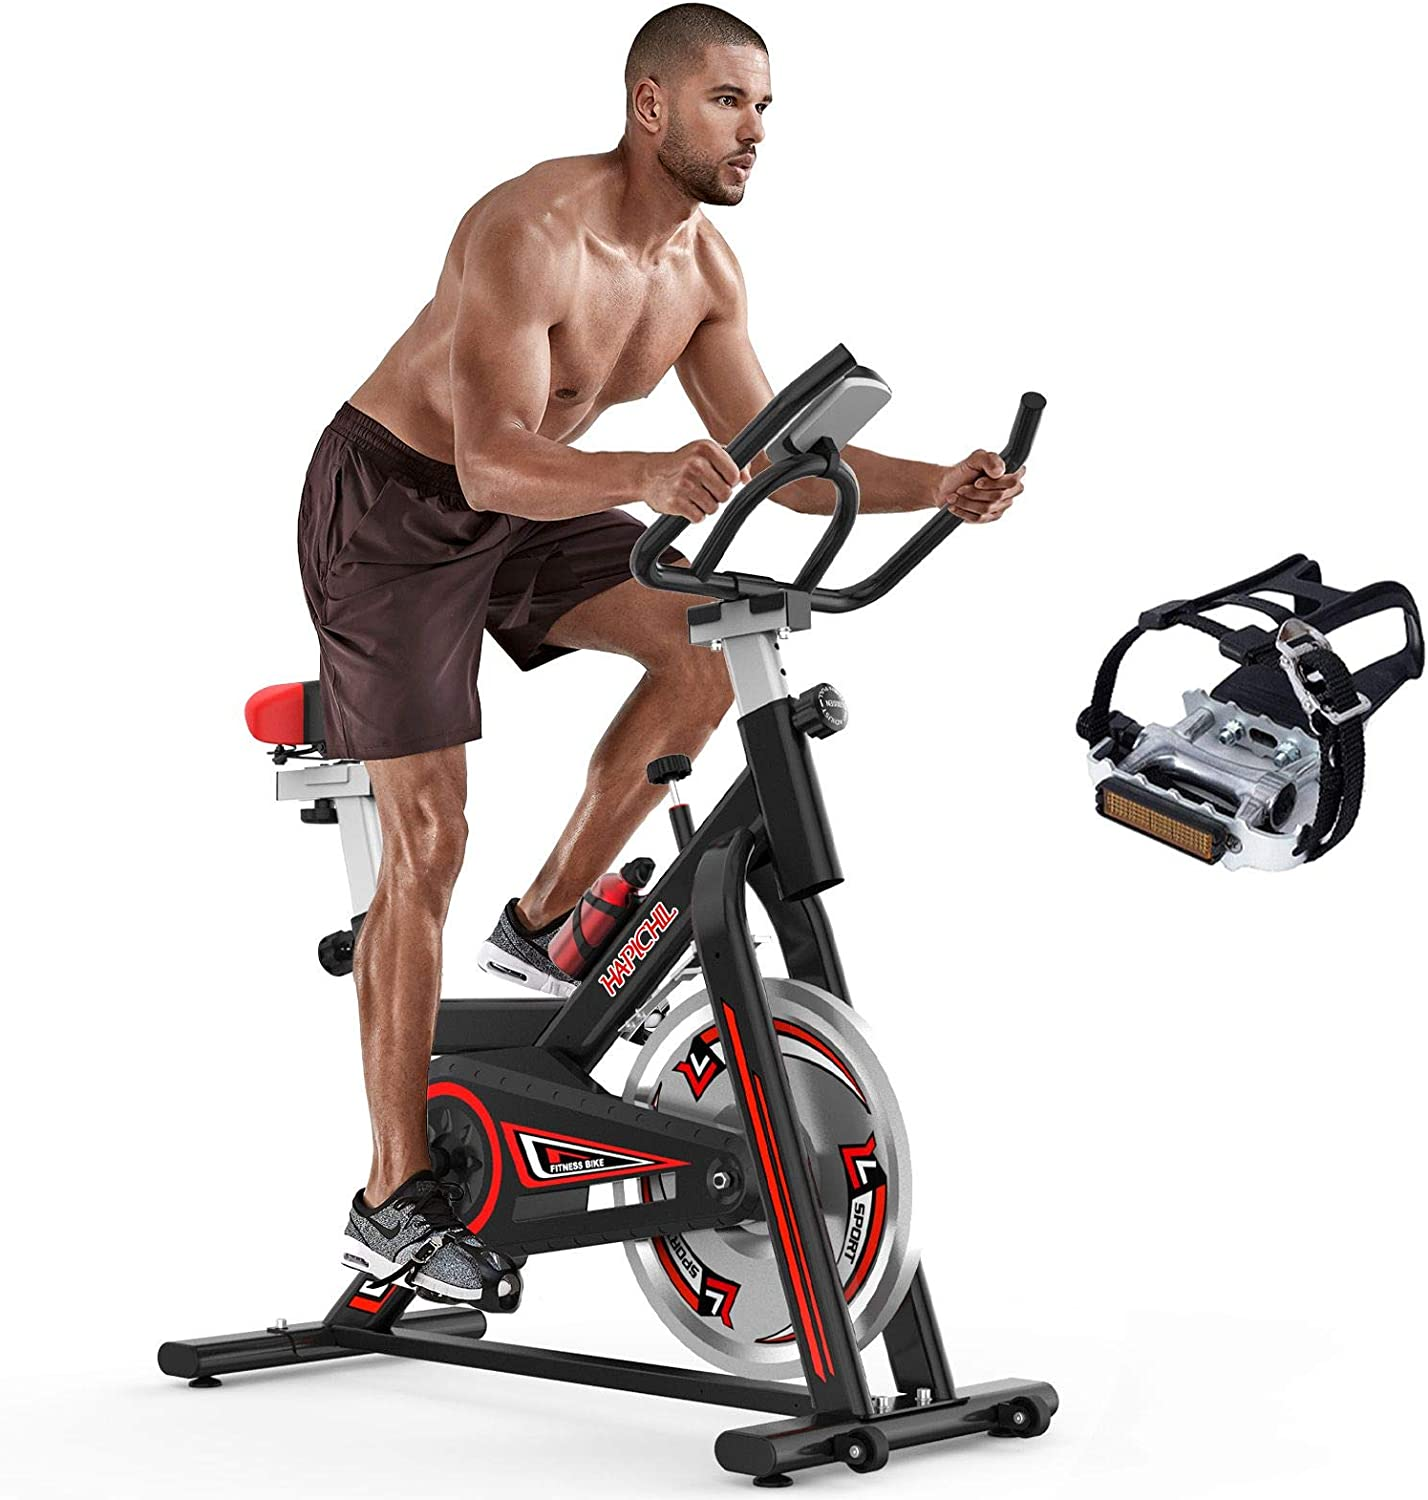 HAPICHIL Exercise Bike for Cardio Training, Stationary Bikes, Heavy Flywheel Bicycle with MAGNETIC RESISTANCE for Home Gym, Cycle Bike with Ipad Mount & Comfortable Seat Cushion